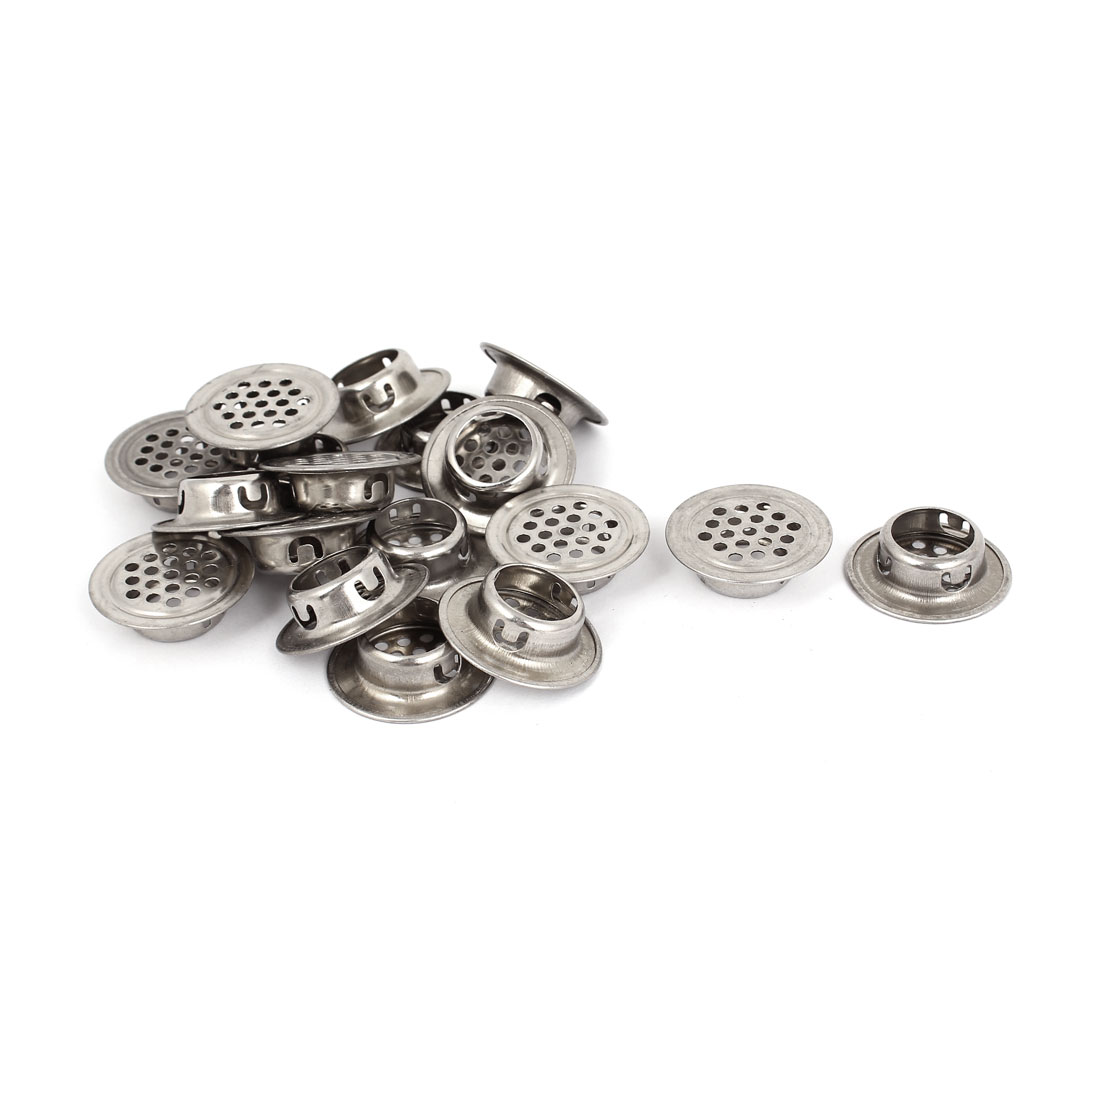 18 Pcs Stainless Steel Flat Round Shaped Mesh Hole Cabinet Air Vent Louver 15mm